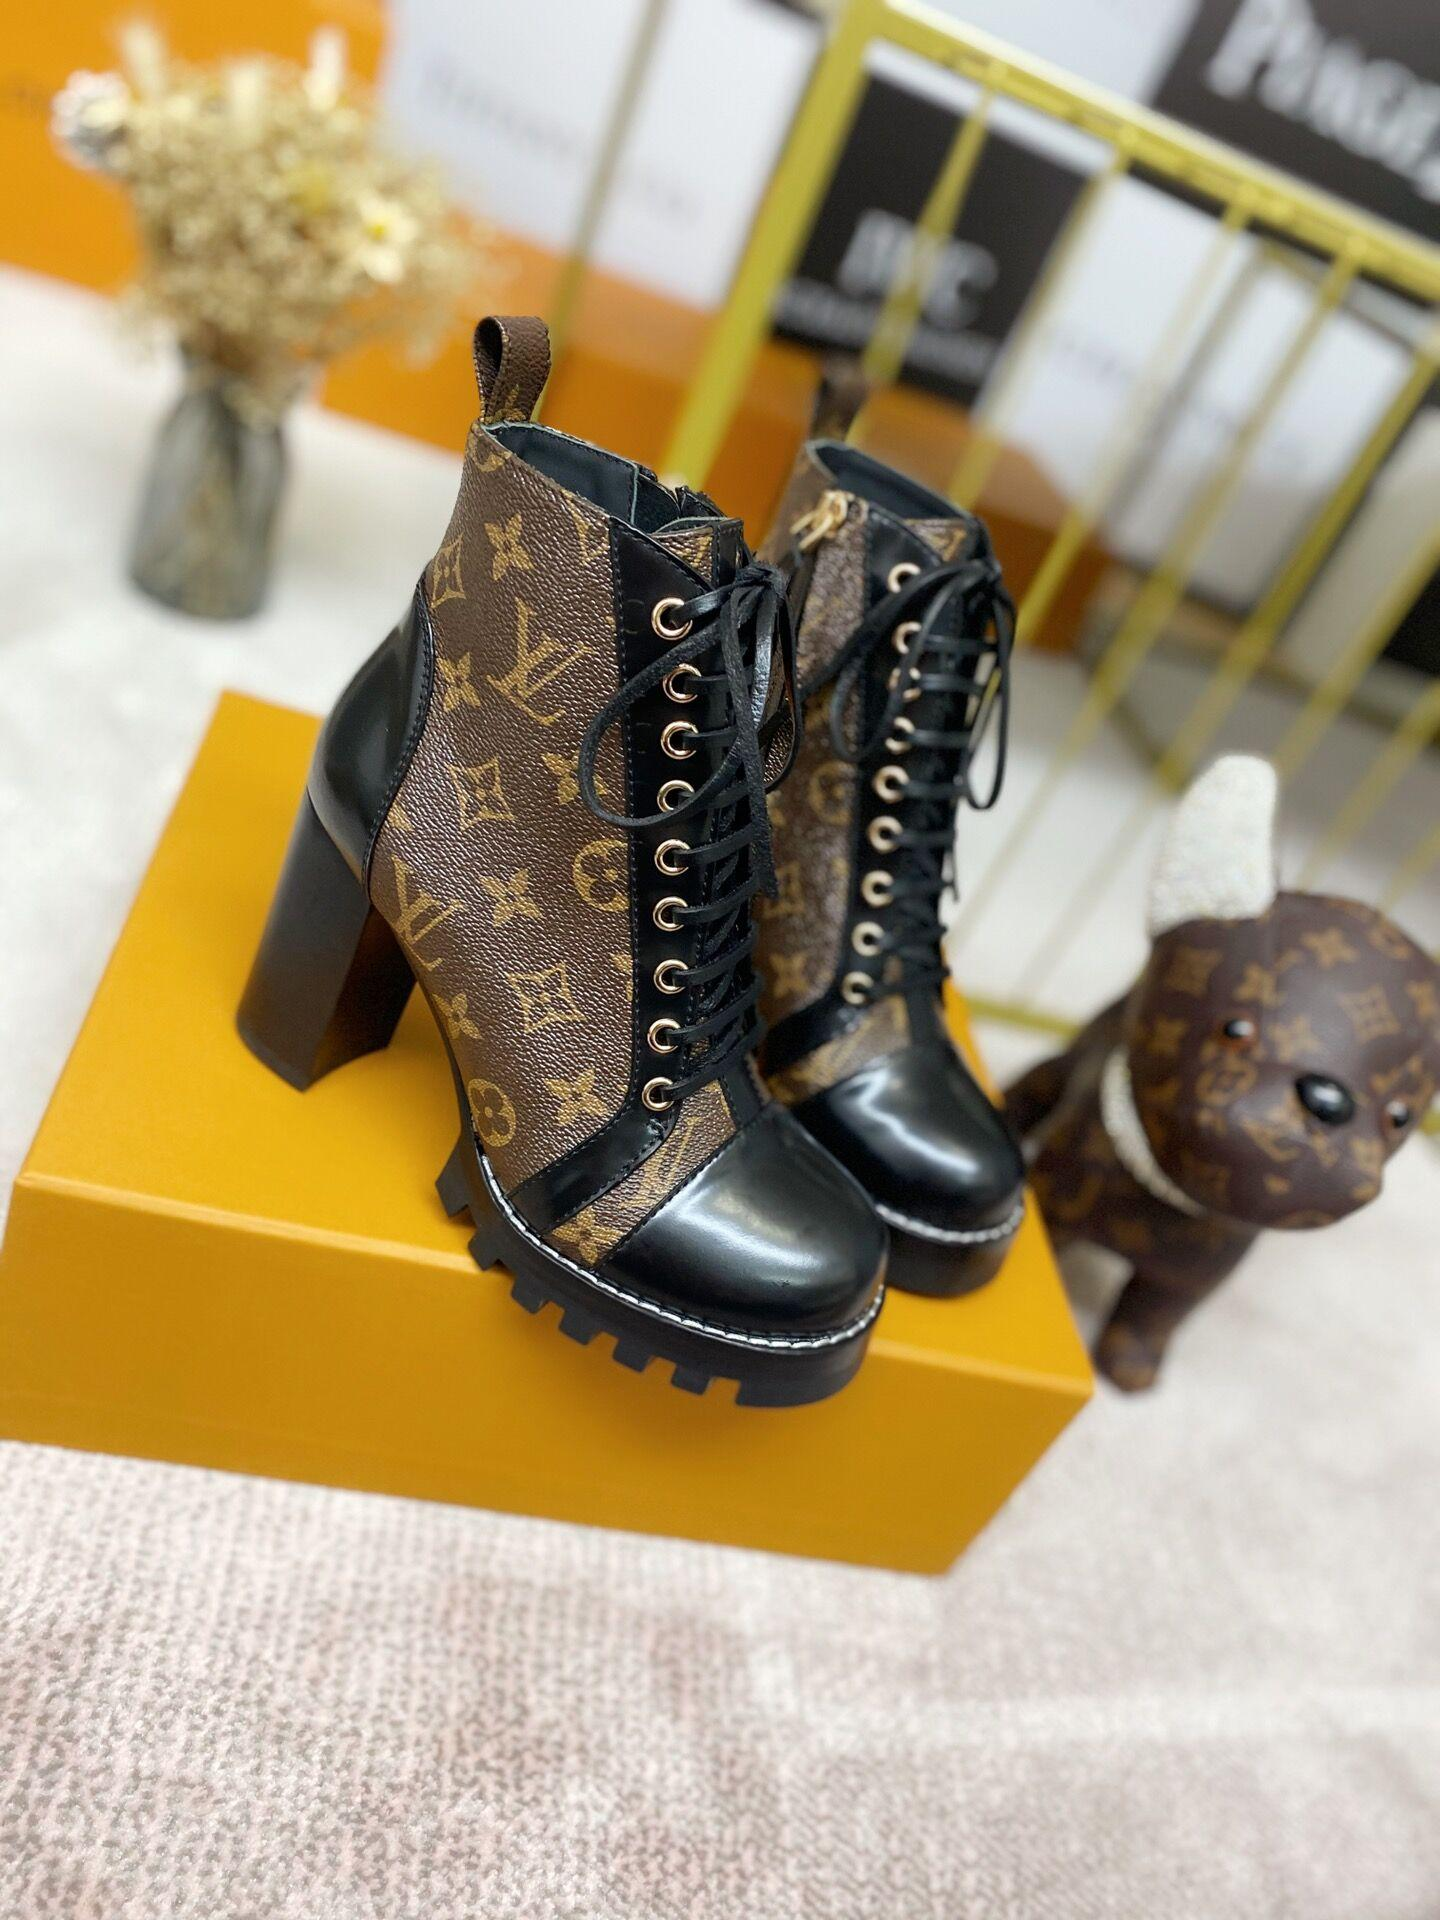 star trail ankle boot Patent Monogram canvas    boot 1A2Y7P 2